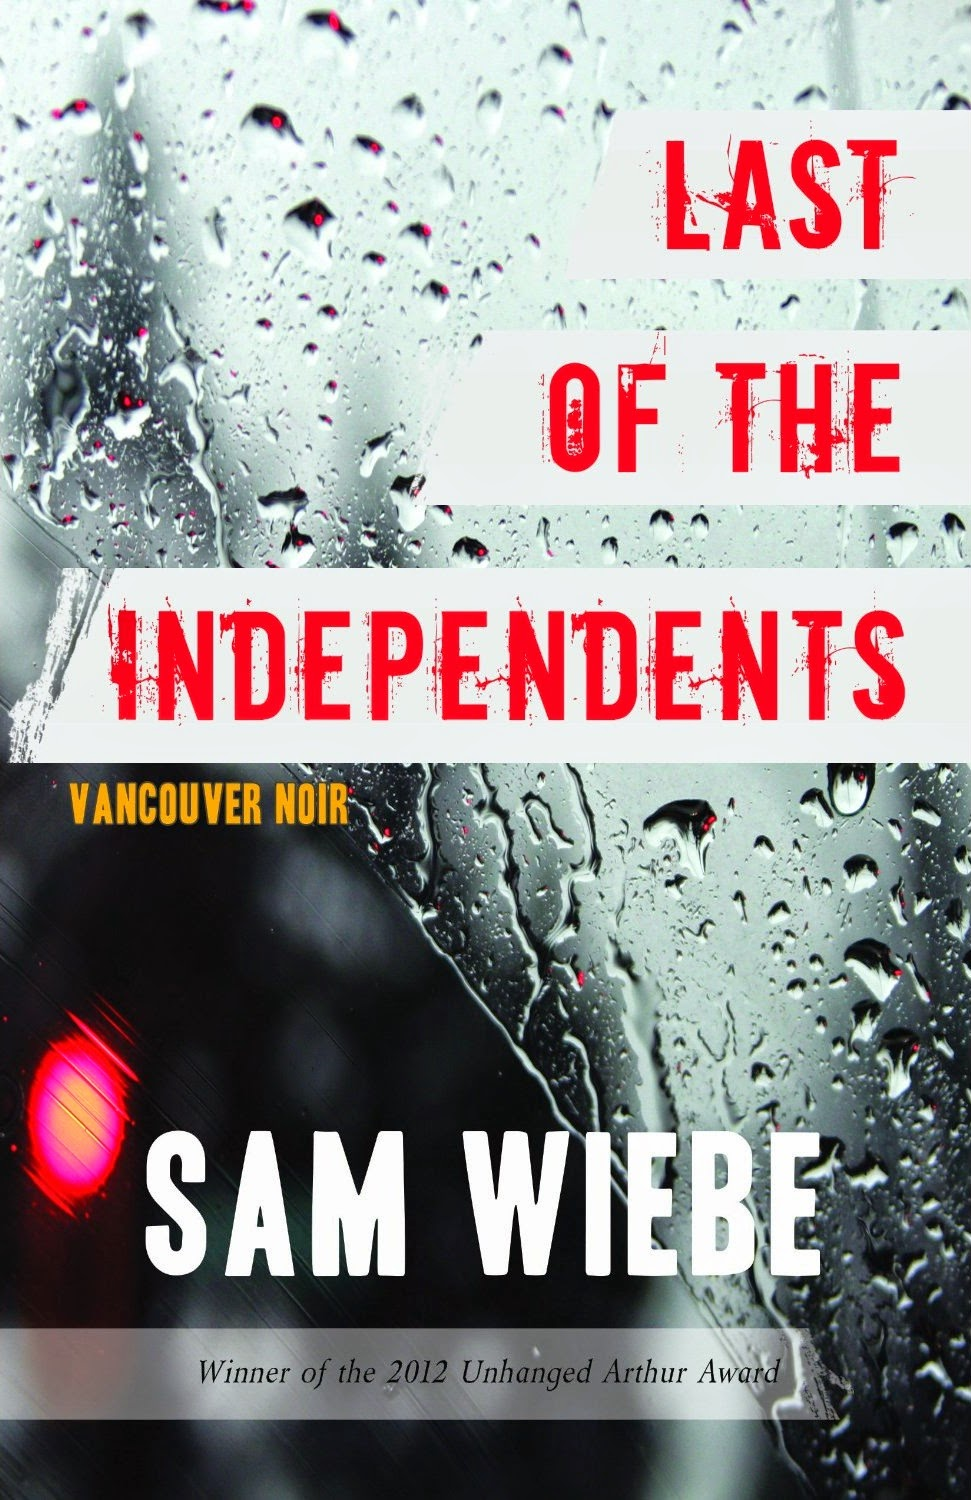 http://discover.halifaxpubliclibraries.ca/?q=title:last%20of%20the%20independents